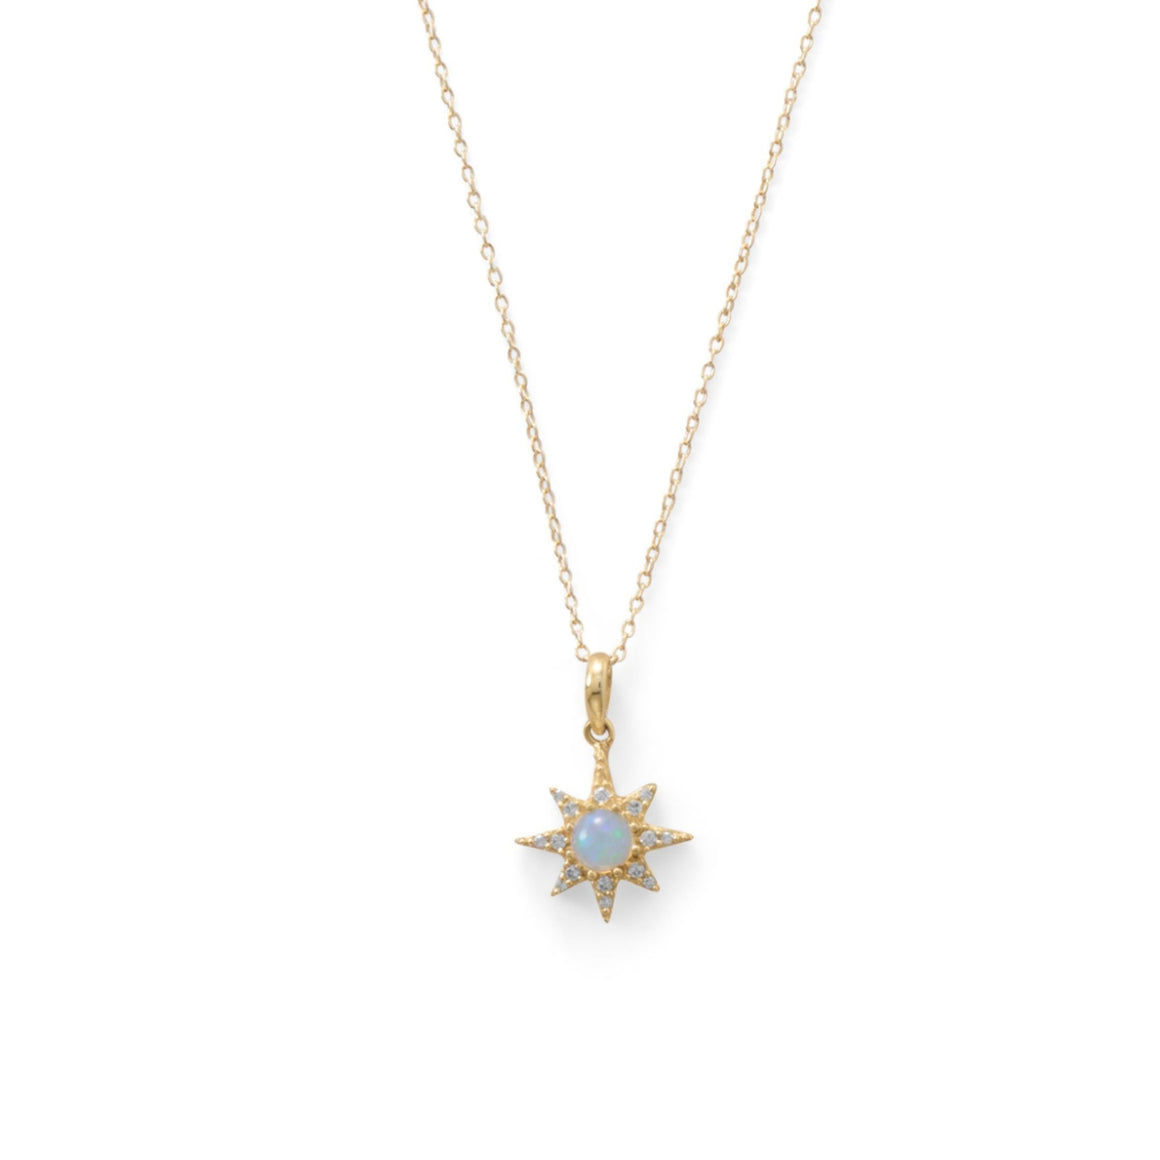 Sparkling Starburst Necklace - Pretty Collected